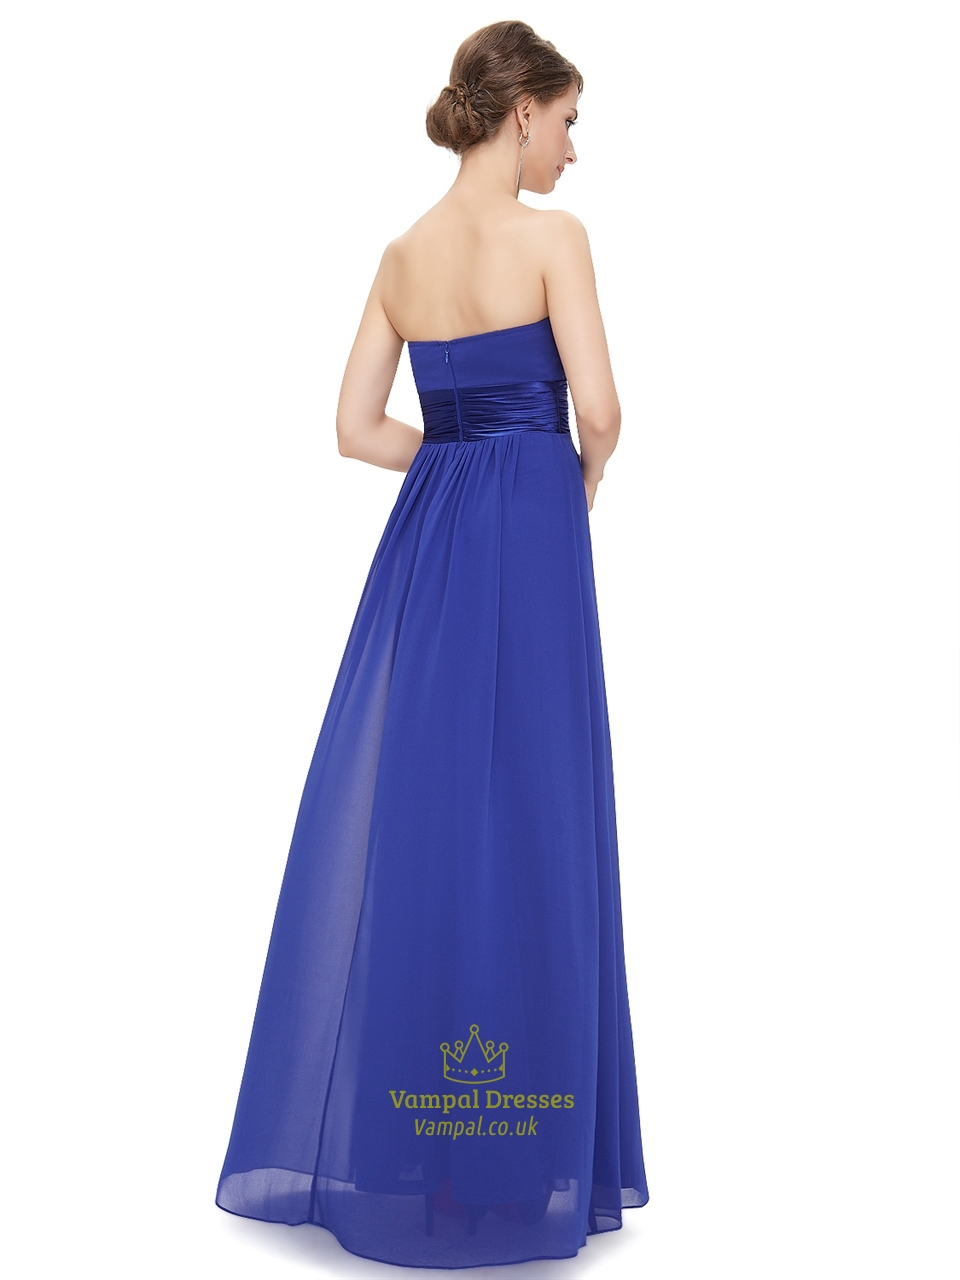 Royal Blue Chiffon Strapless Long Bridesmaid Dress For Beach Wedding ...